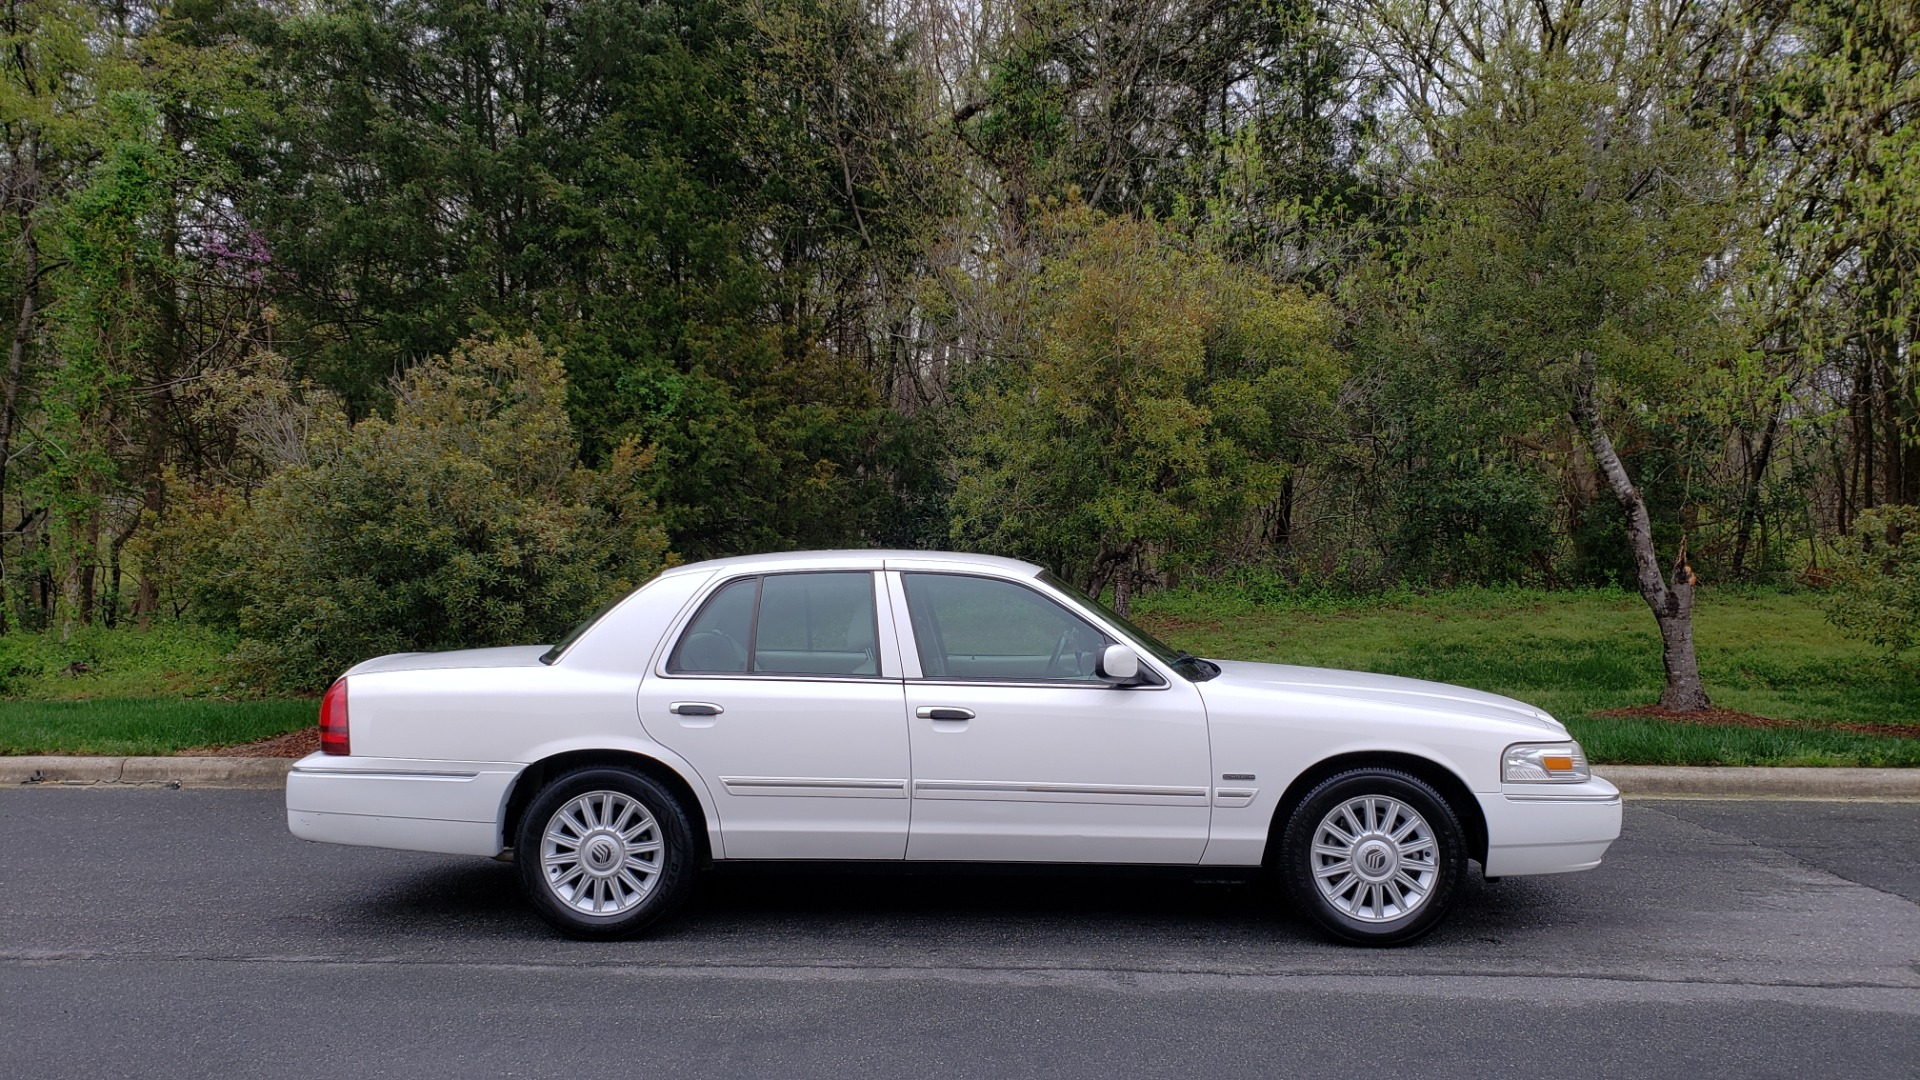 Used 2011 Mercury GRAND MARQUIS LS / 4.6L V8 / 4-SPD AUTO / KEYLESS ENTRY / LOW MILES for sale Sold at Formula Imports in Charlotte NC 28227 5